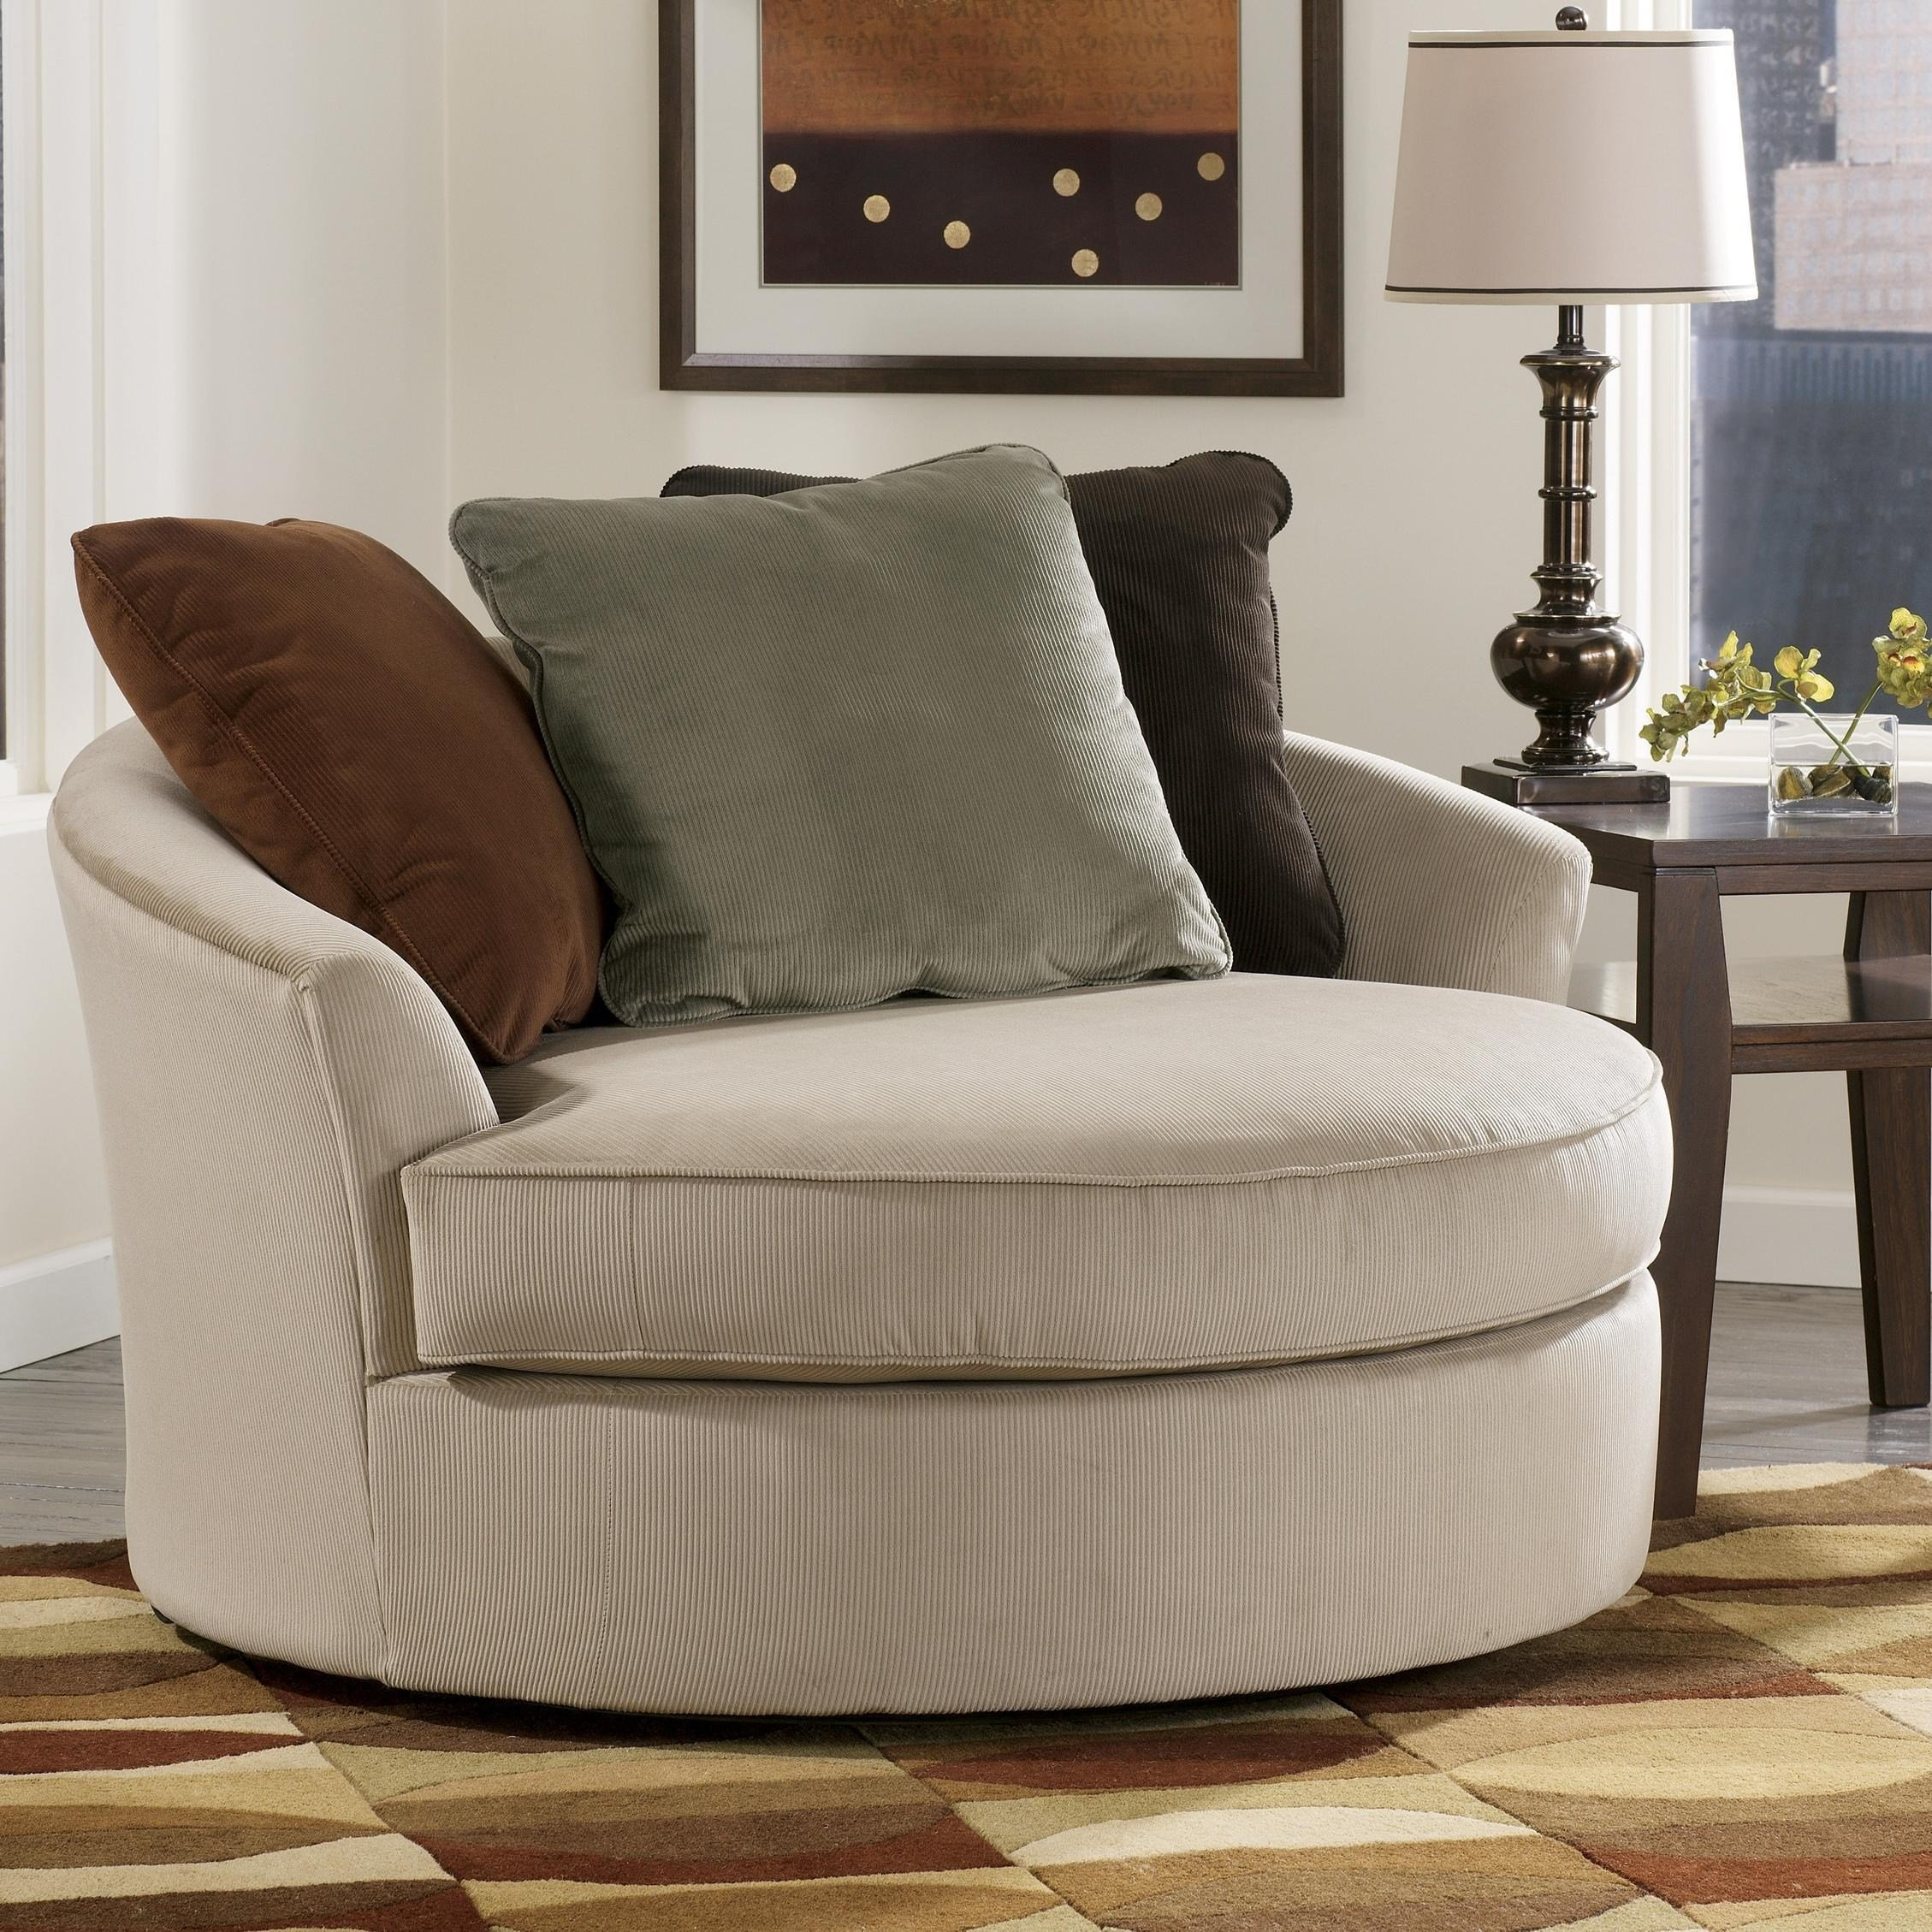 Best 15 Ideas Of Round Swivel Sofa Chairs Sofa Ideas With Pictures